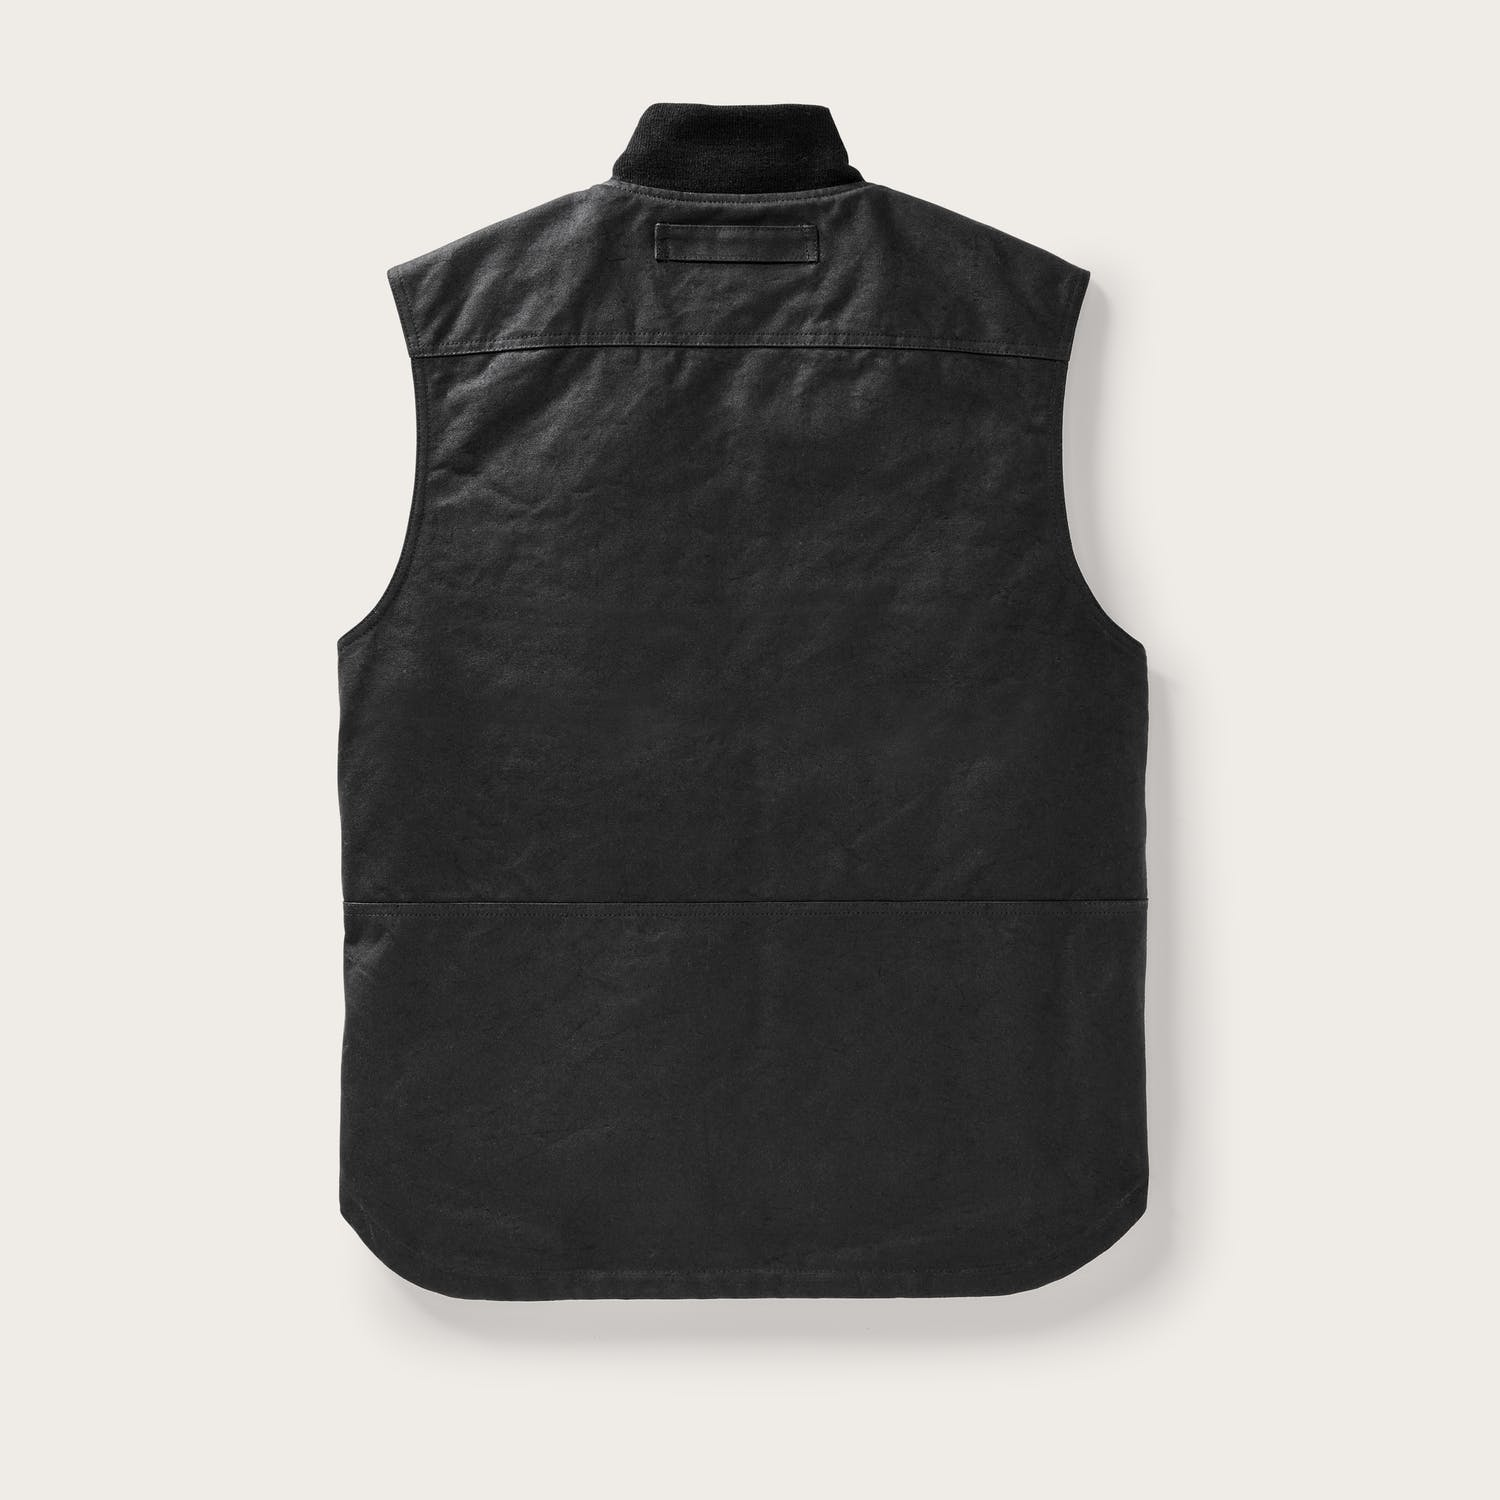 Filson - Wax Work Vest - The Populess Company